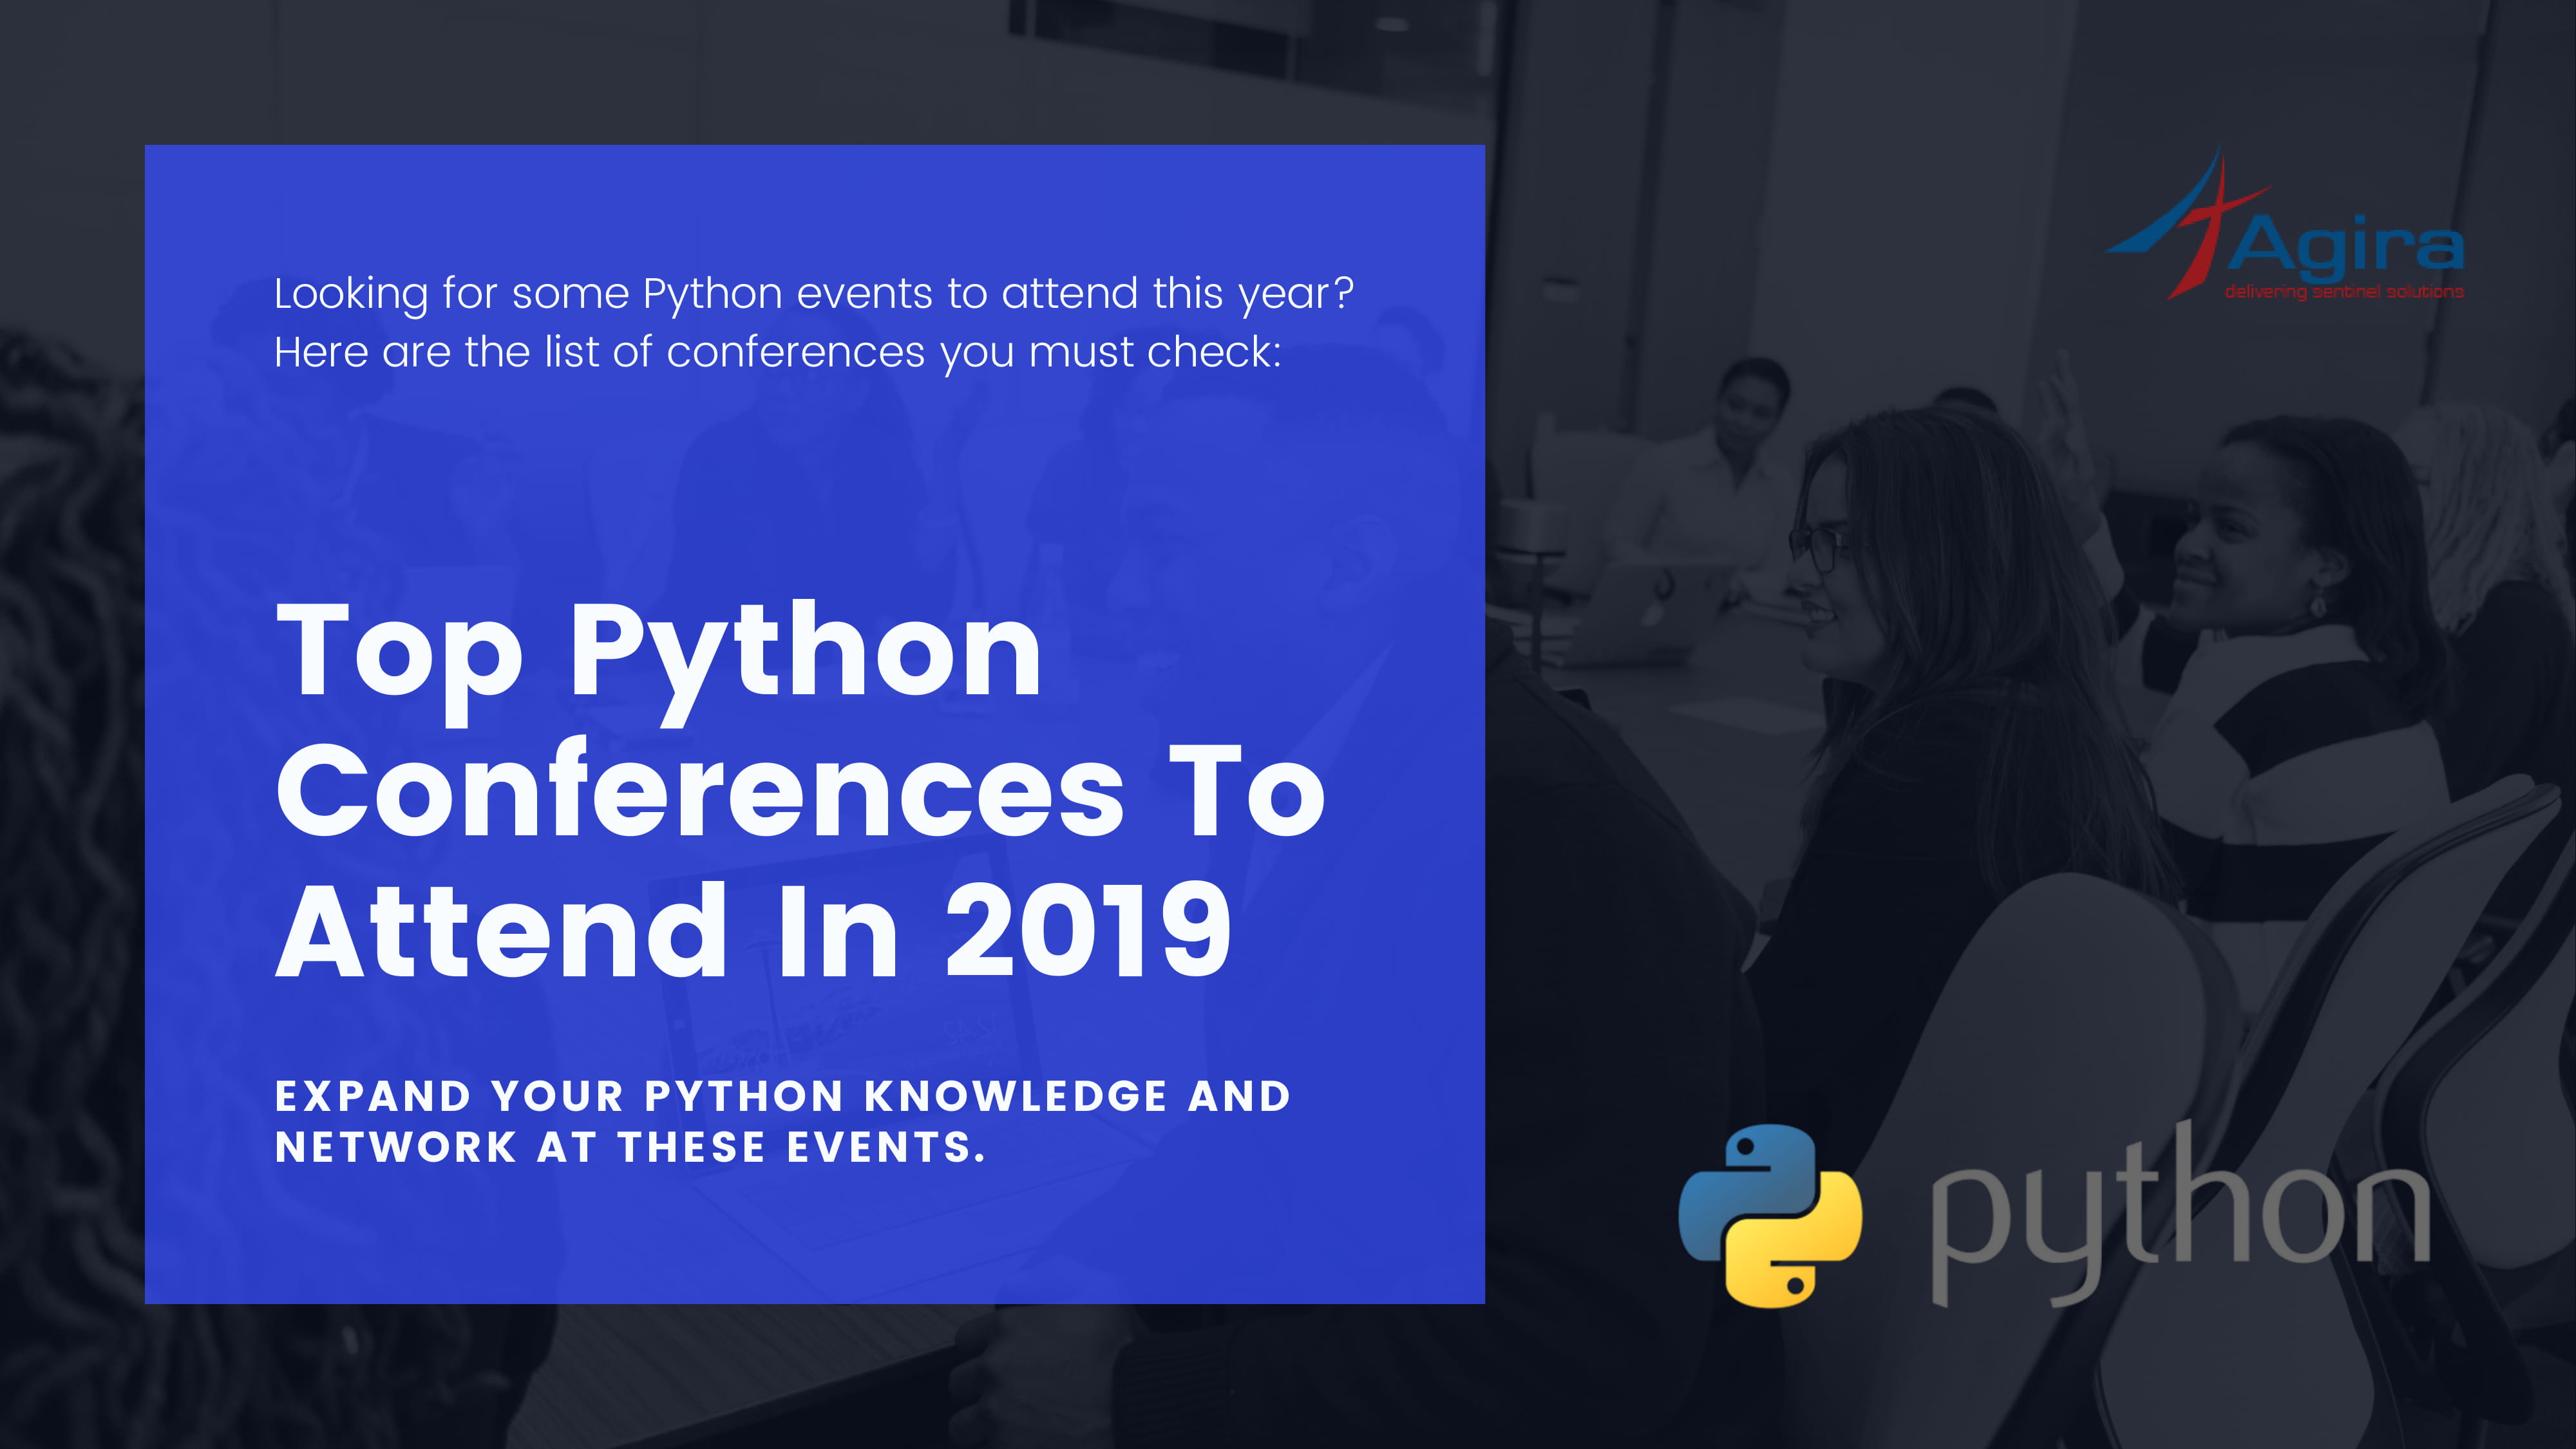 Top python conferences to attend in 2019